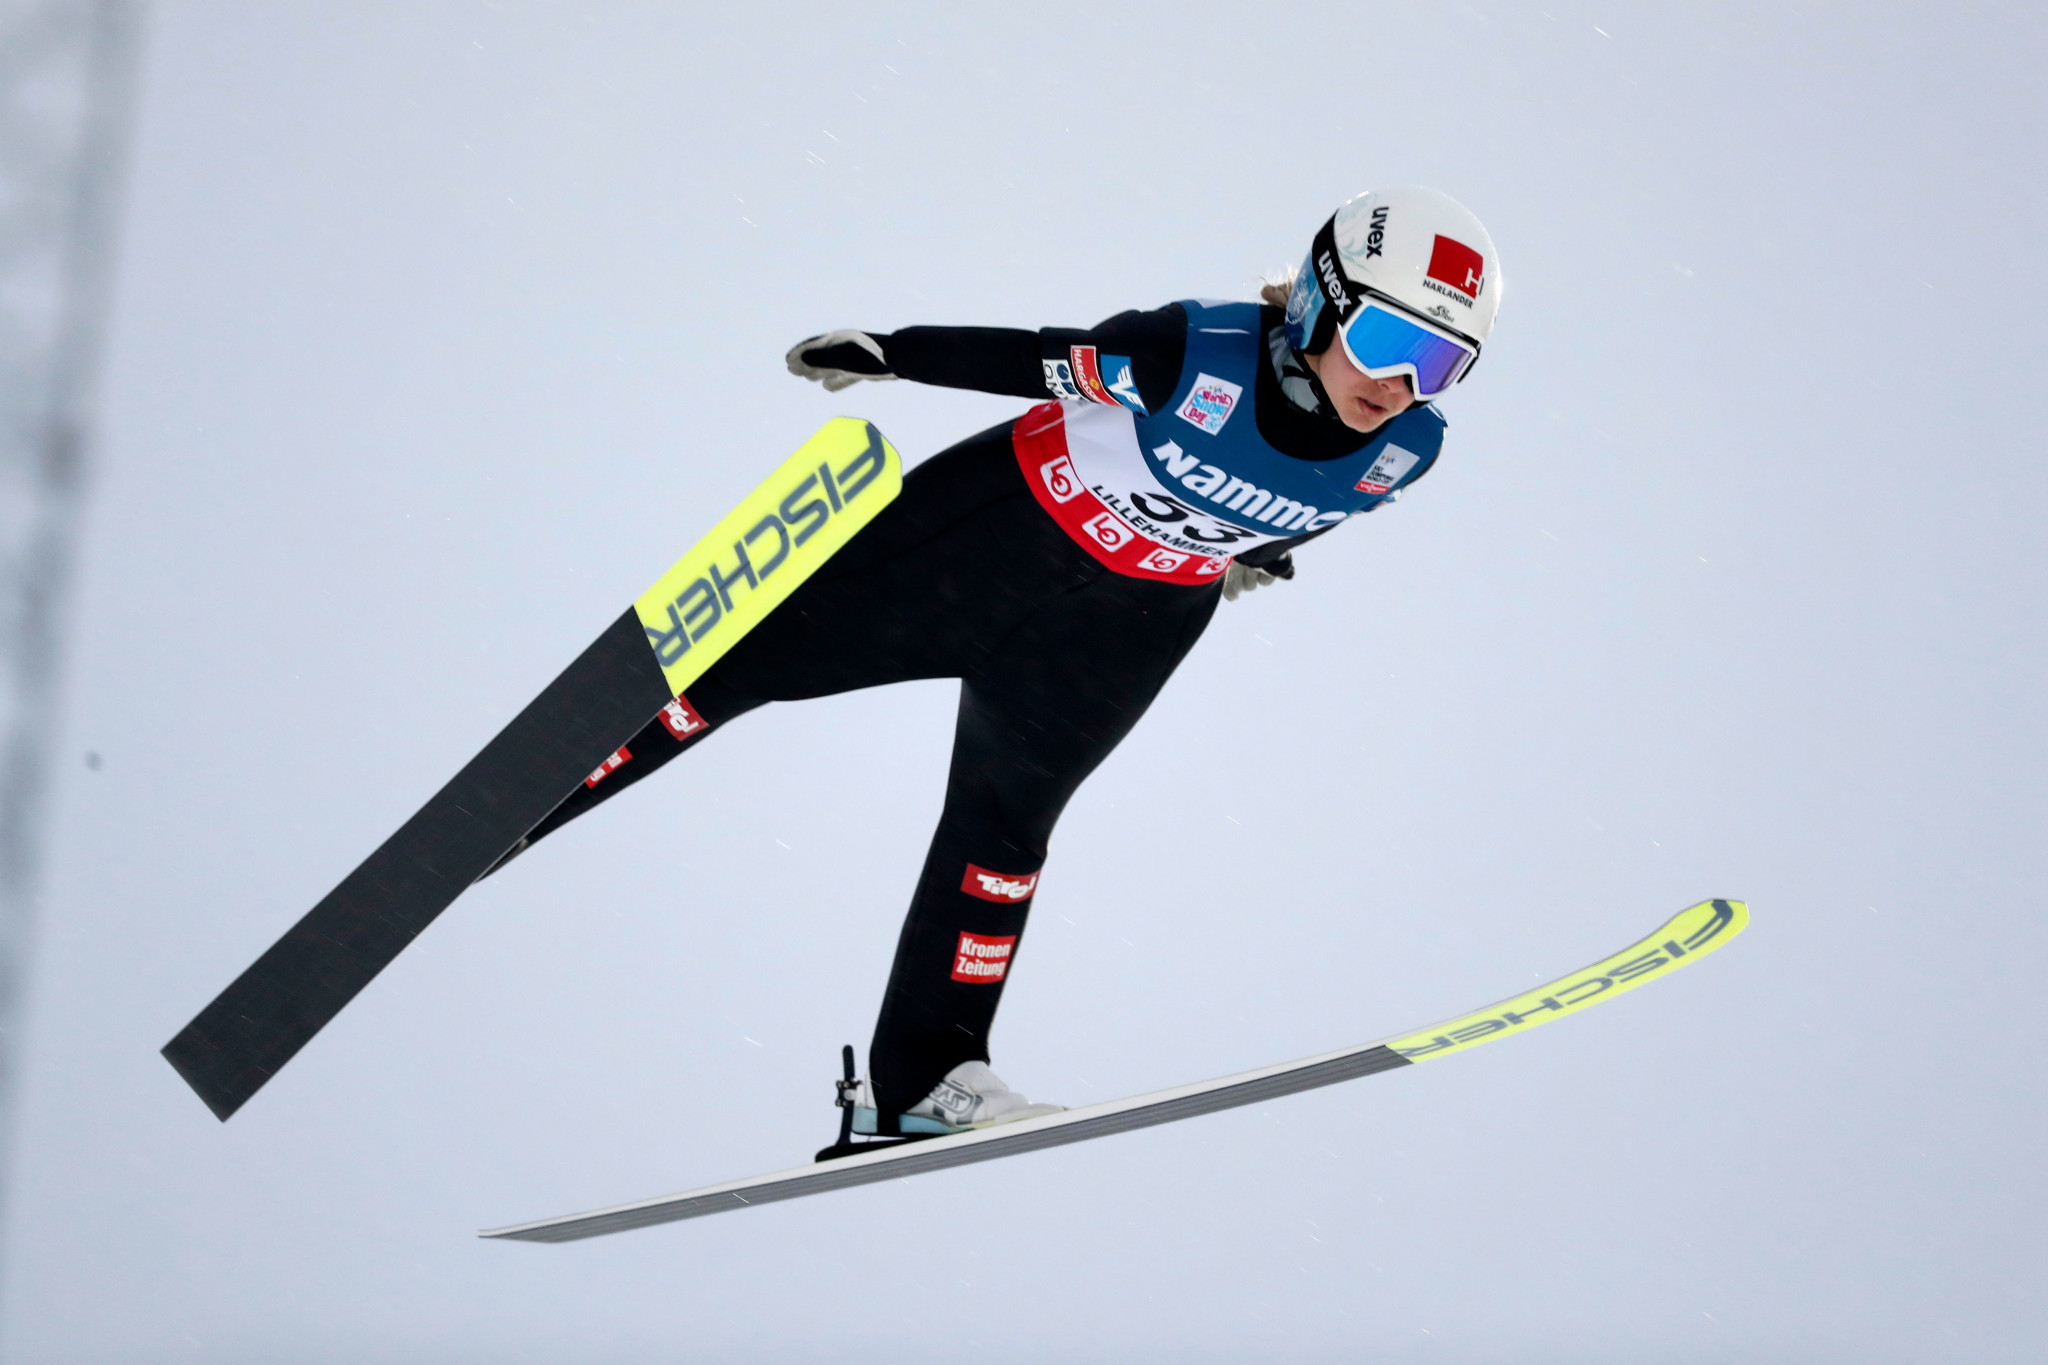 Hölzl extends lead over Lundby at home FIS Ski Jumping World Cup in Hinzenbach